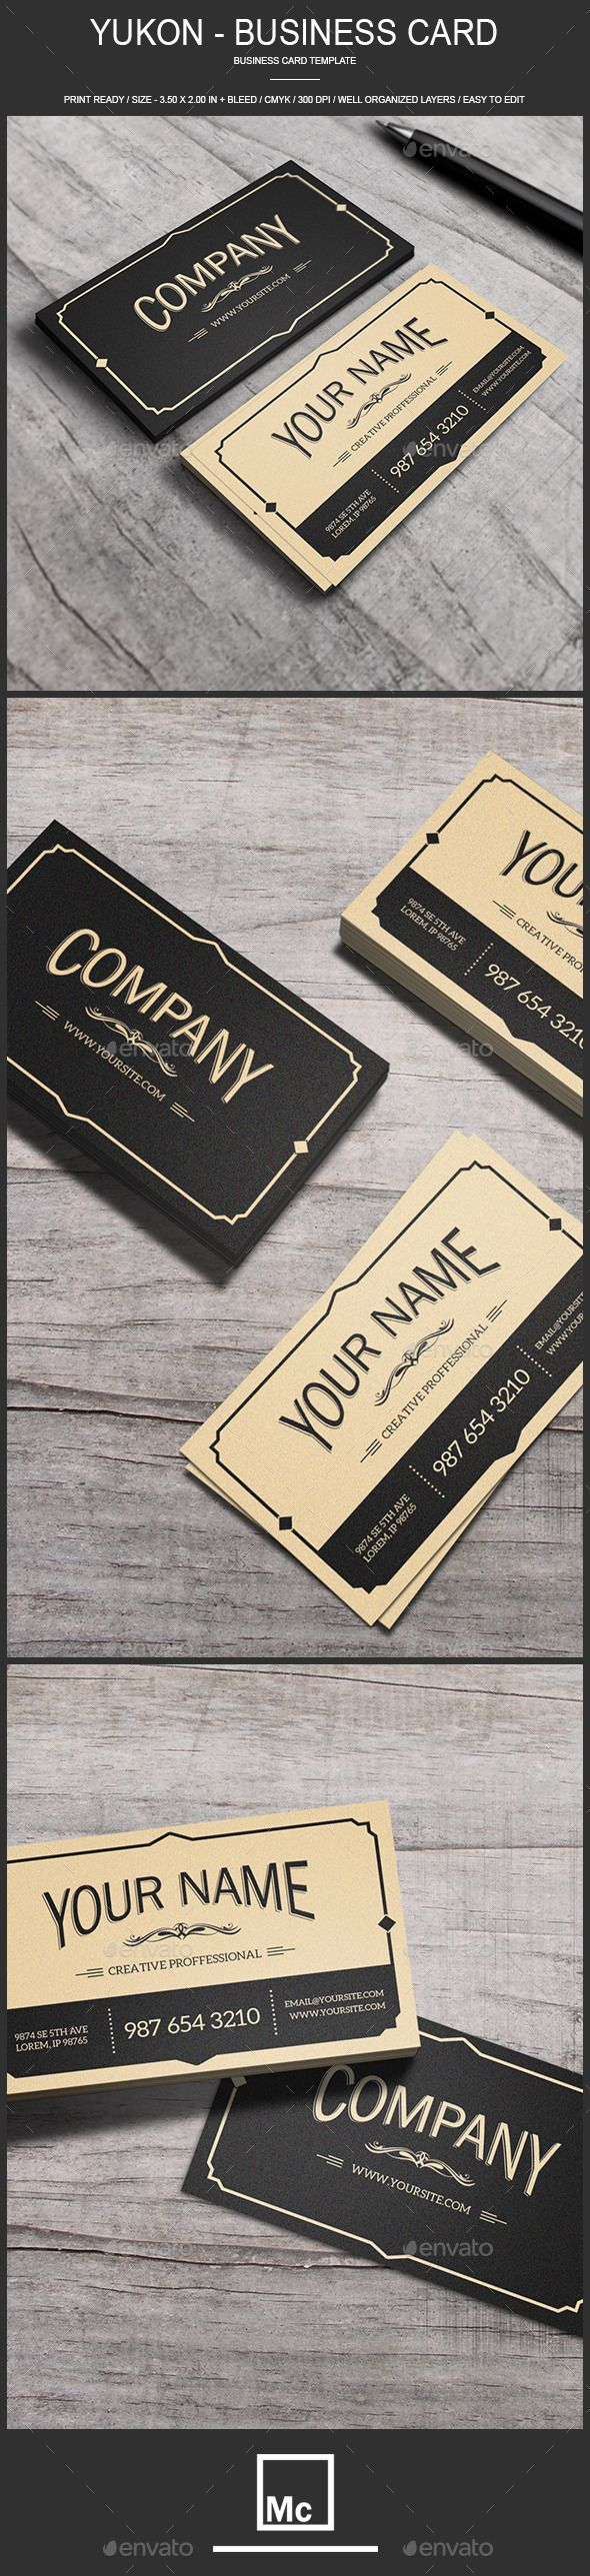 Yukon - Vintage Business Card - Retro/Vintage Business Cards